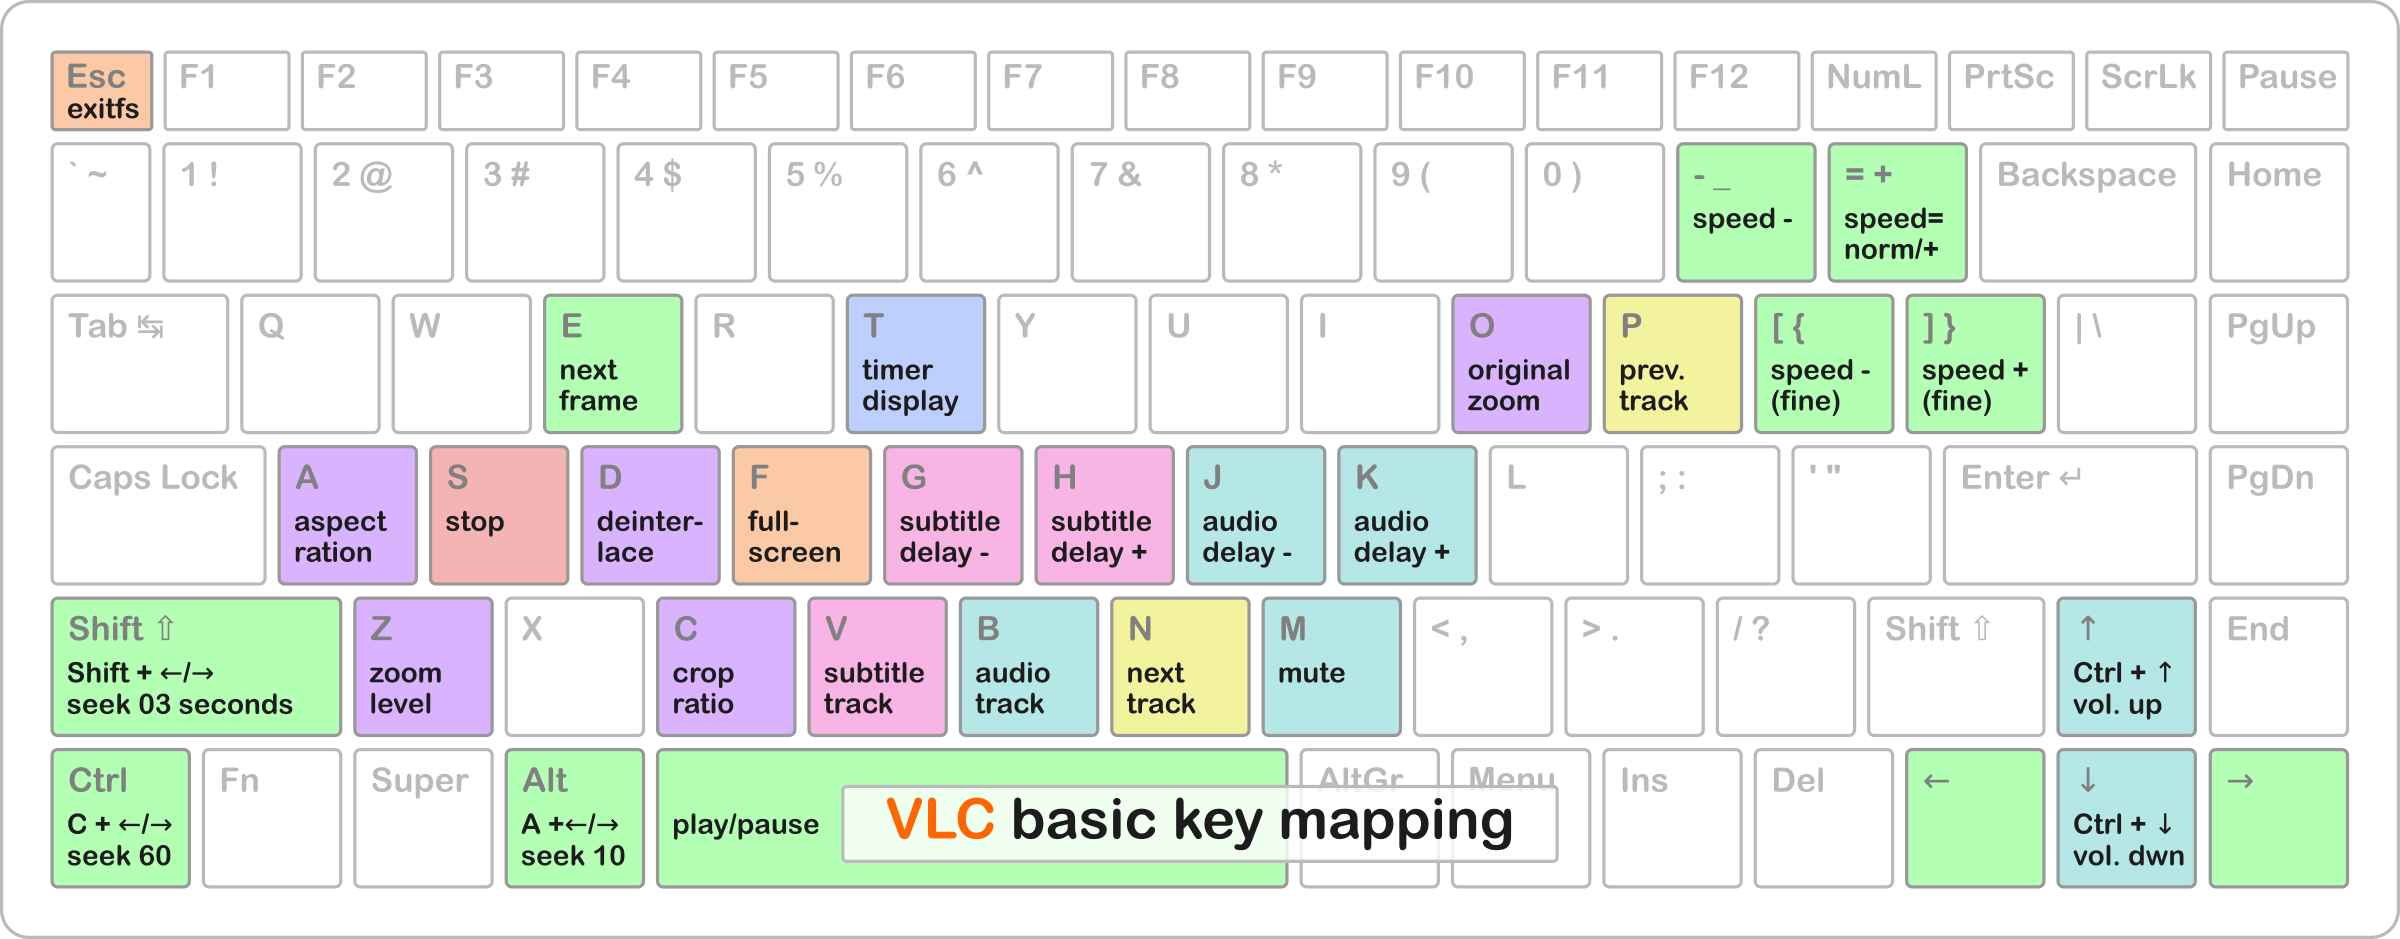 VLC basic key mapping by Todd Weed